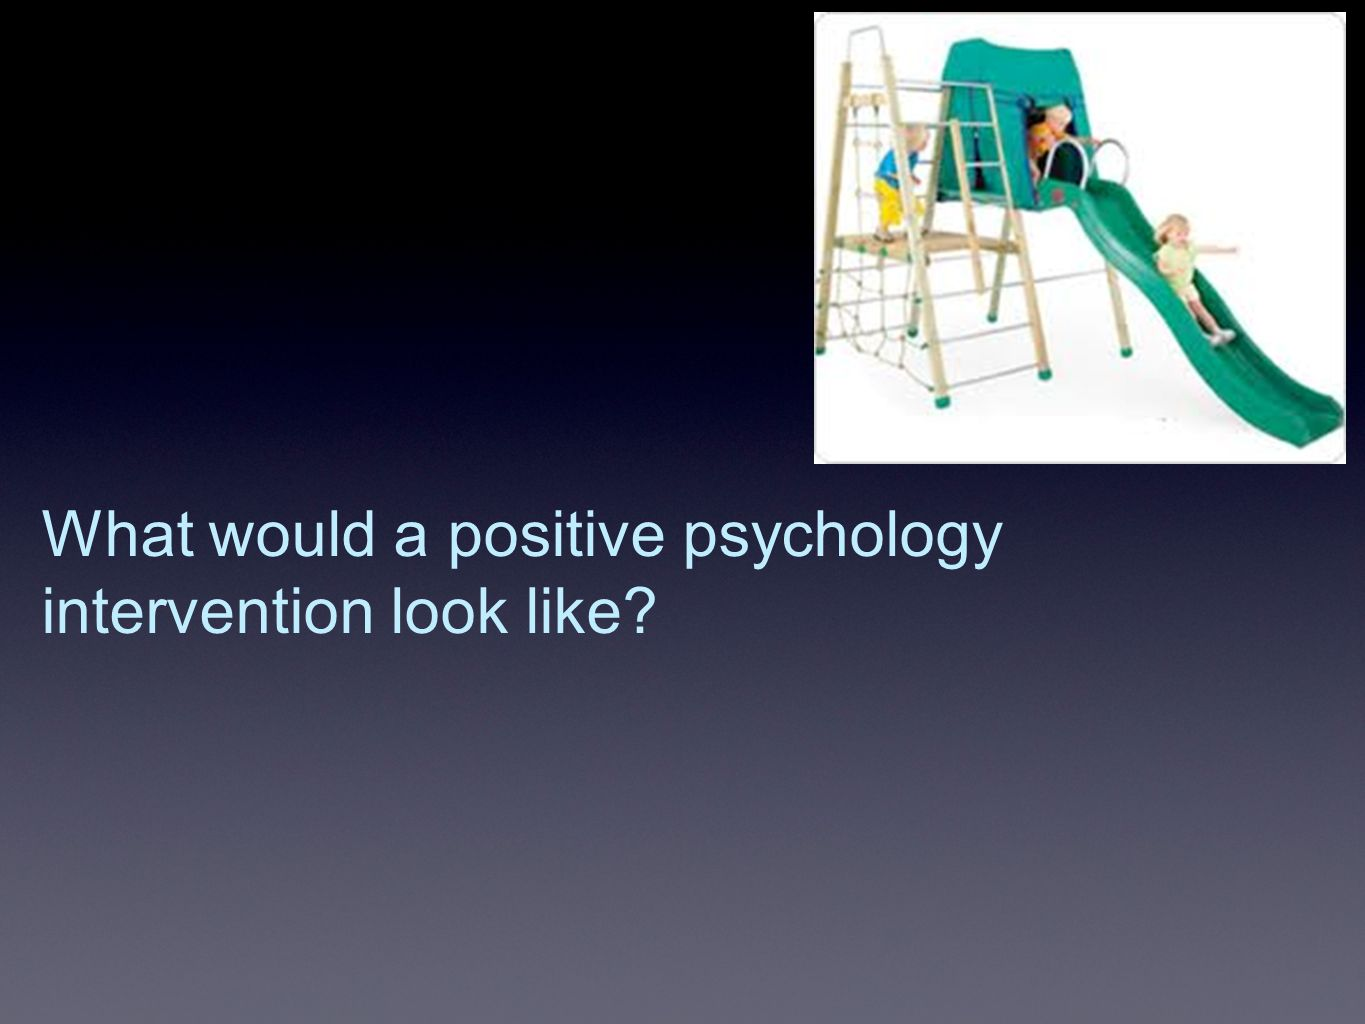 What would a positive psychology intervention look like